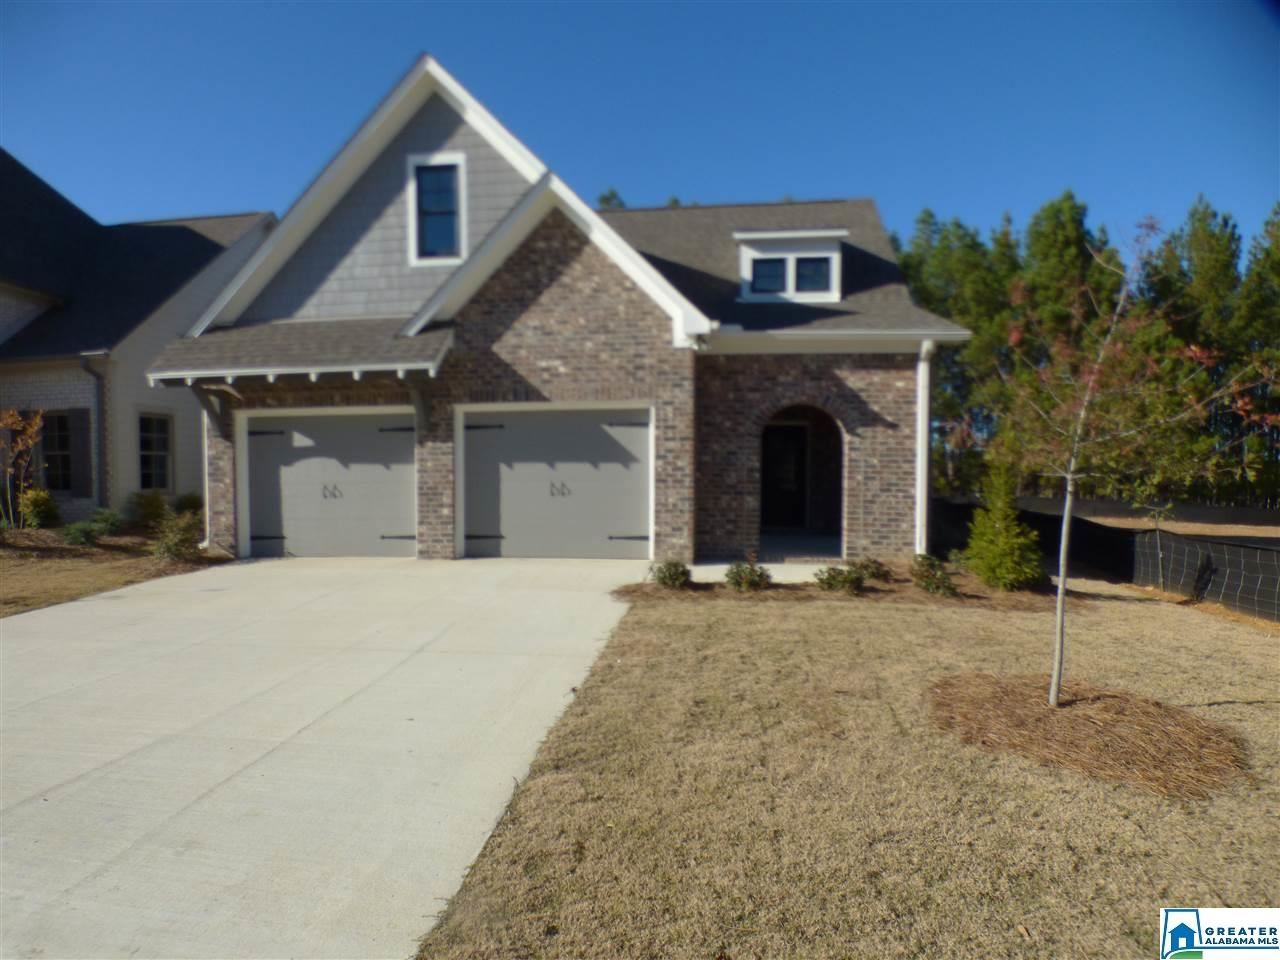 265 CROSSBRIDGE RD, Chelsea, AL 35043 - #: 845146